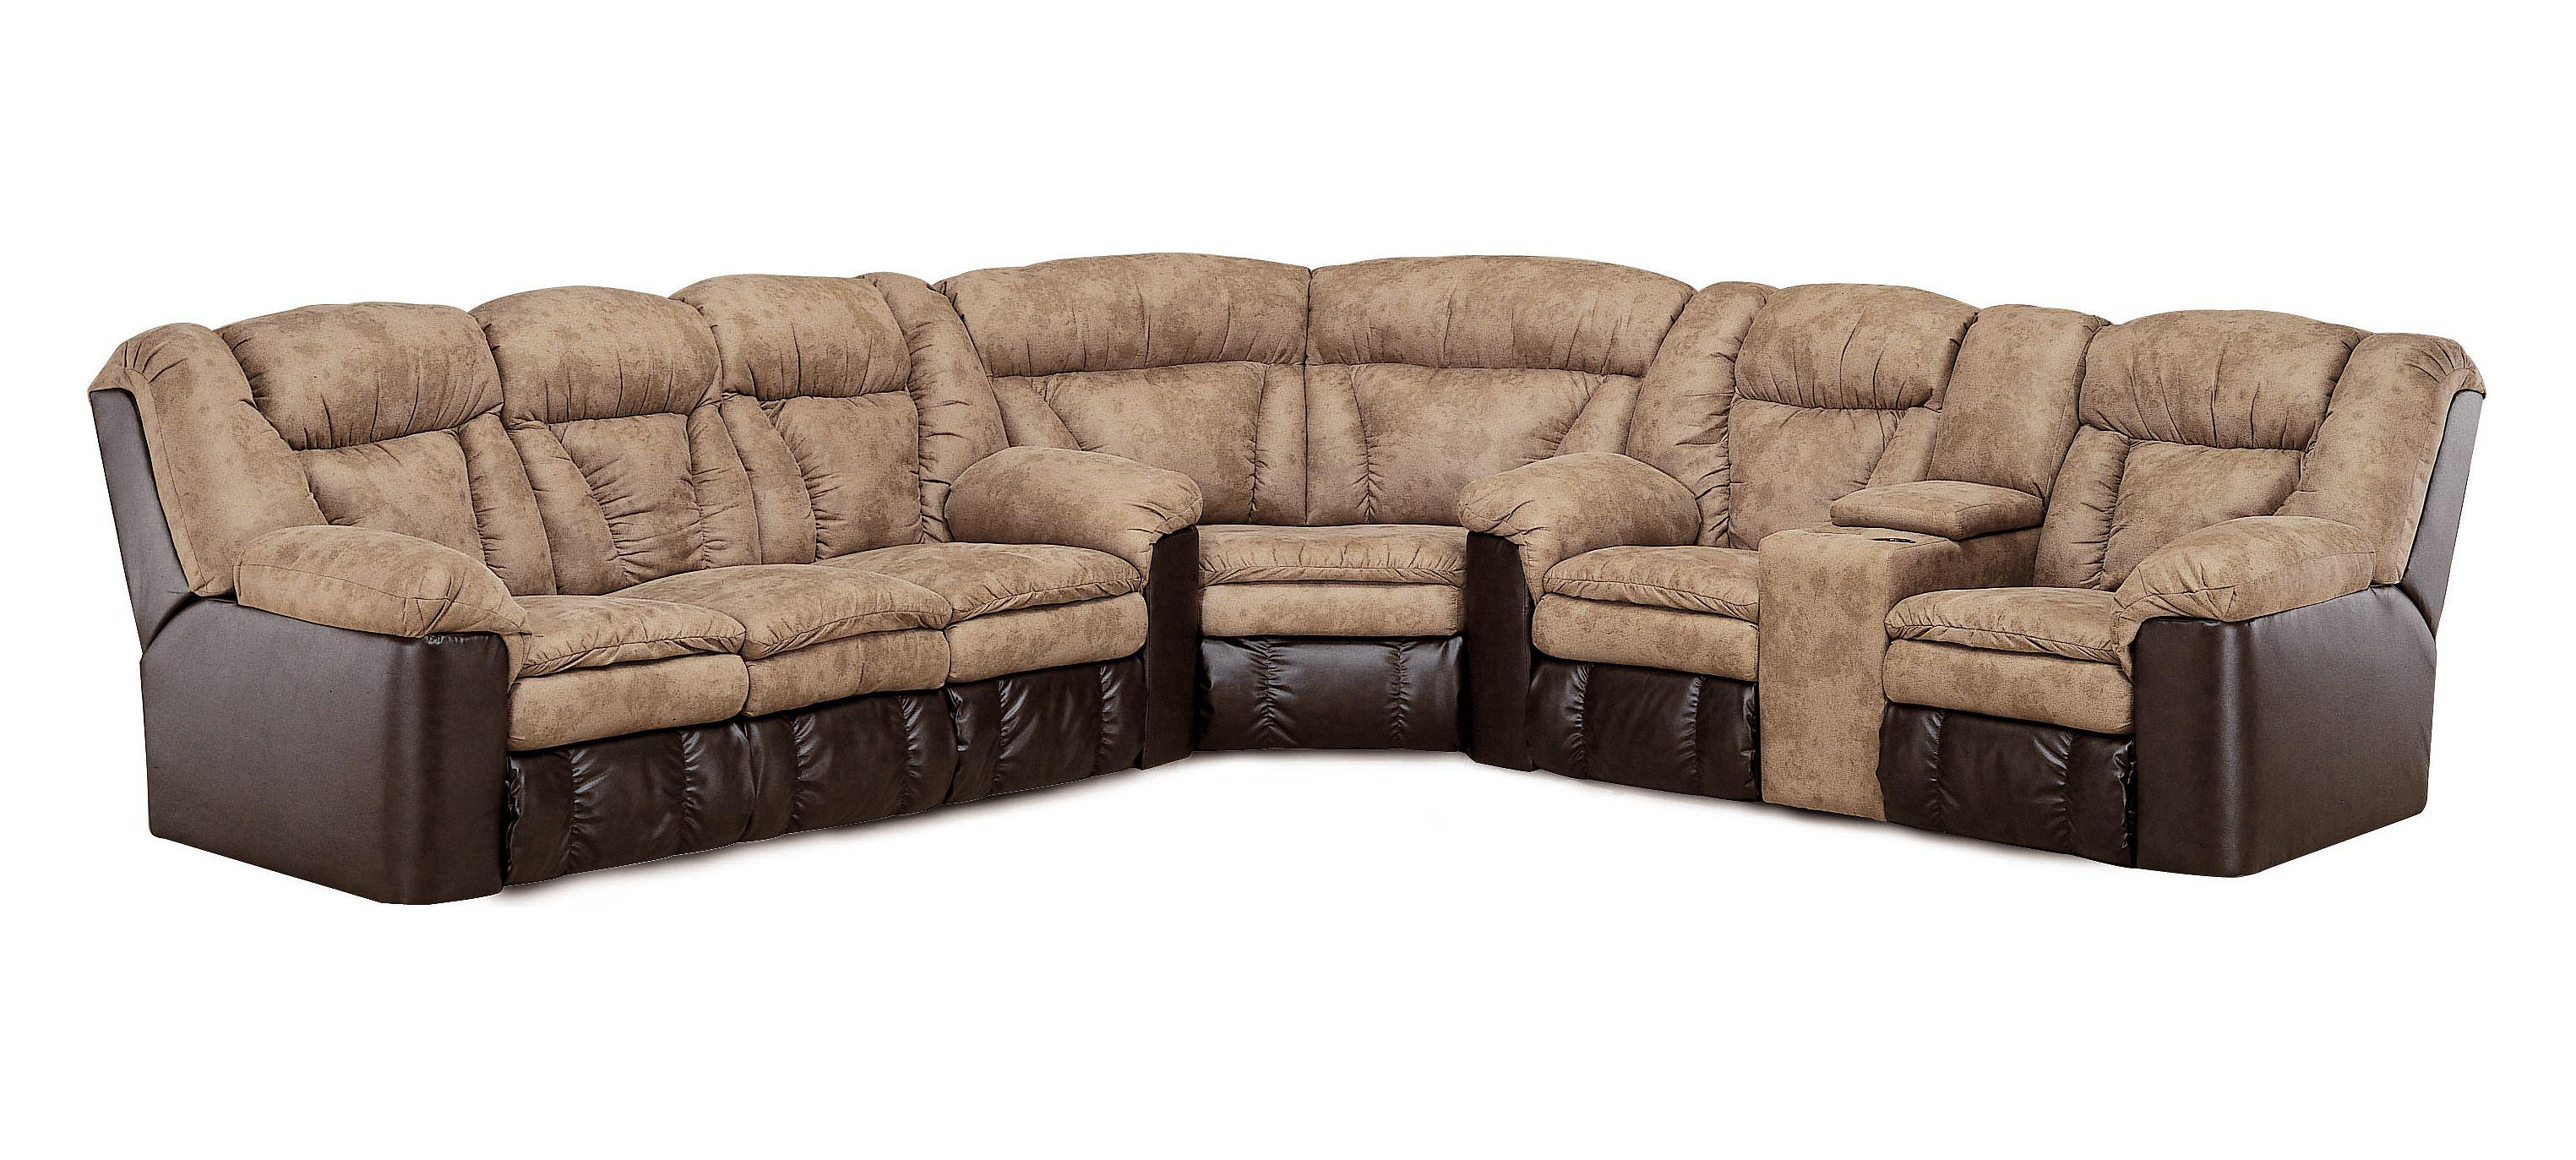 Lane Talon Lane Reclining Sectional Group Rune s Furniture